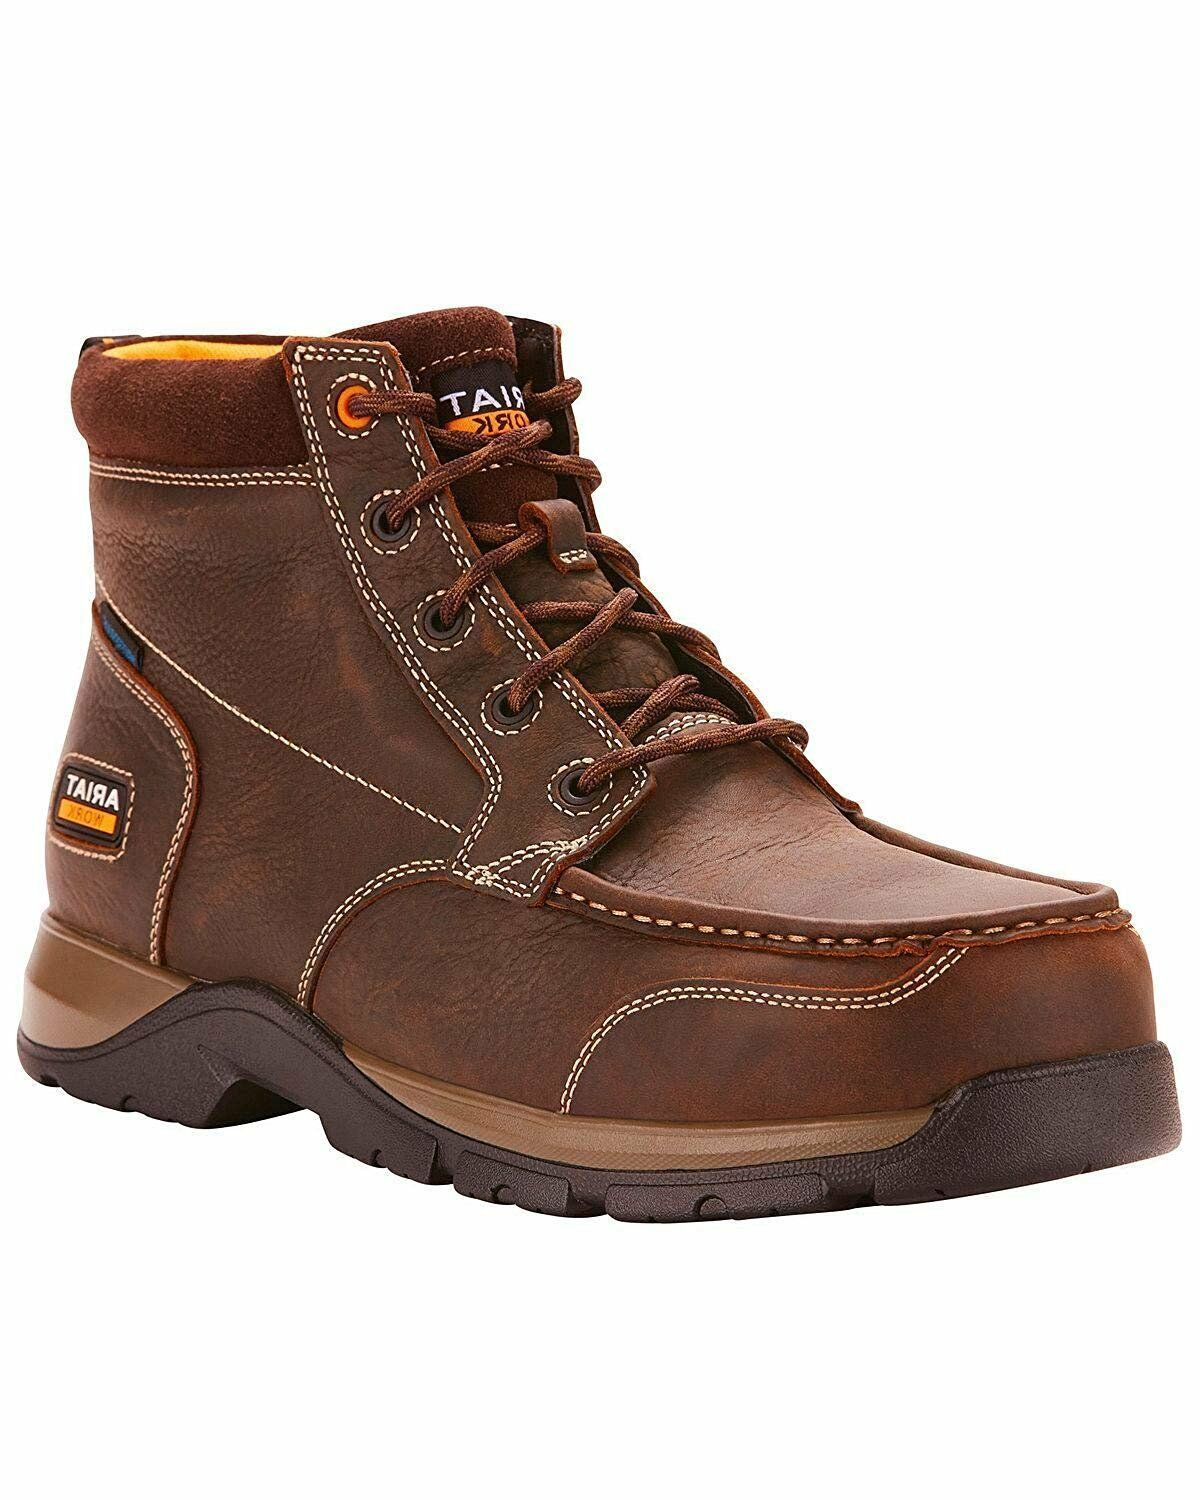 Ariat Work Men's Edge LTE Chukka H2O Composite Toe Boot